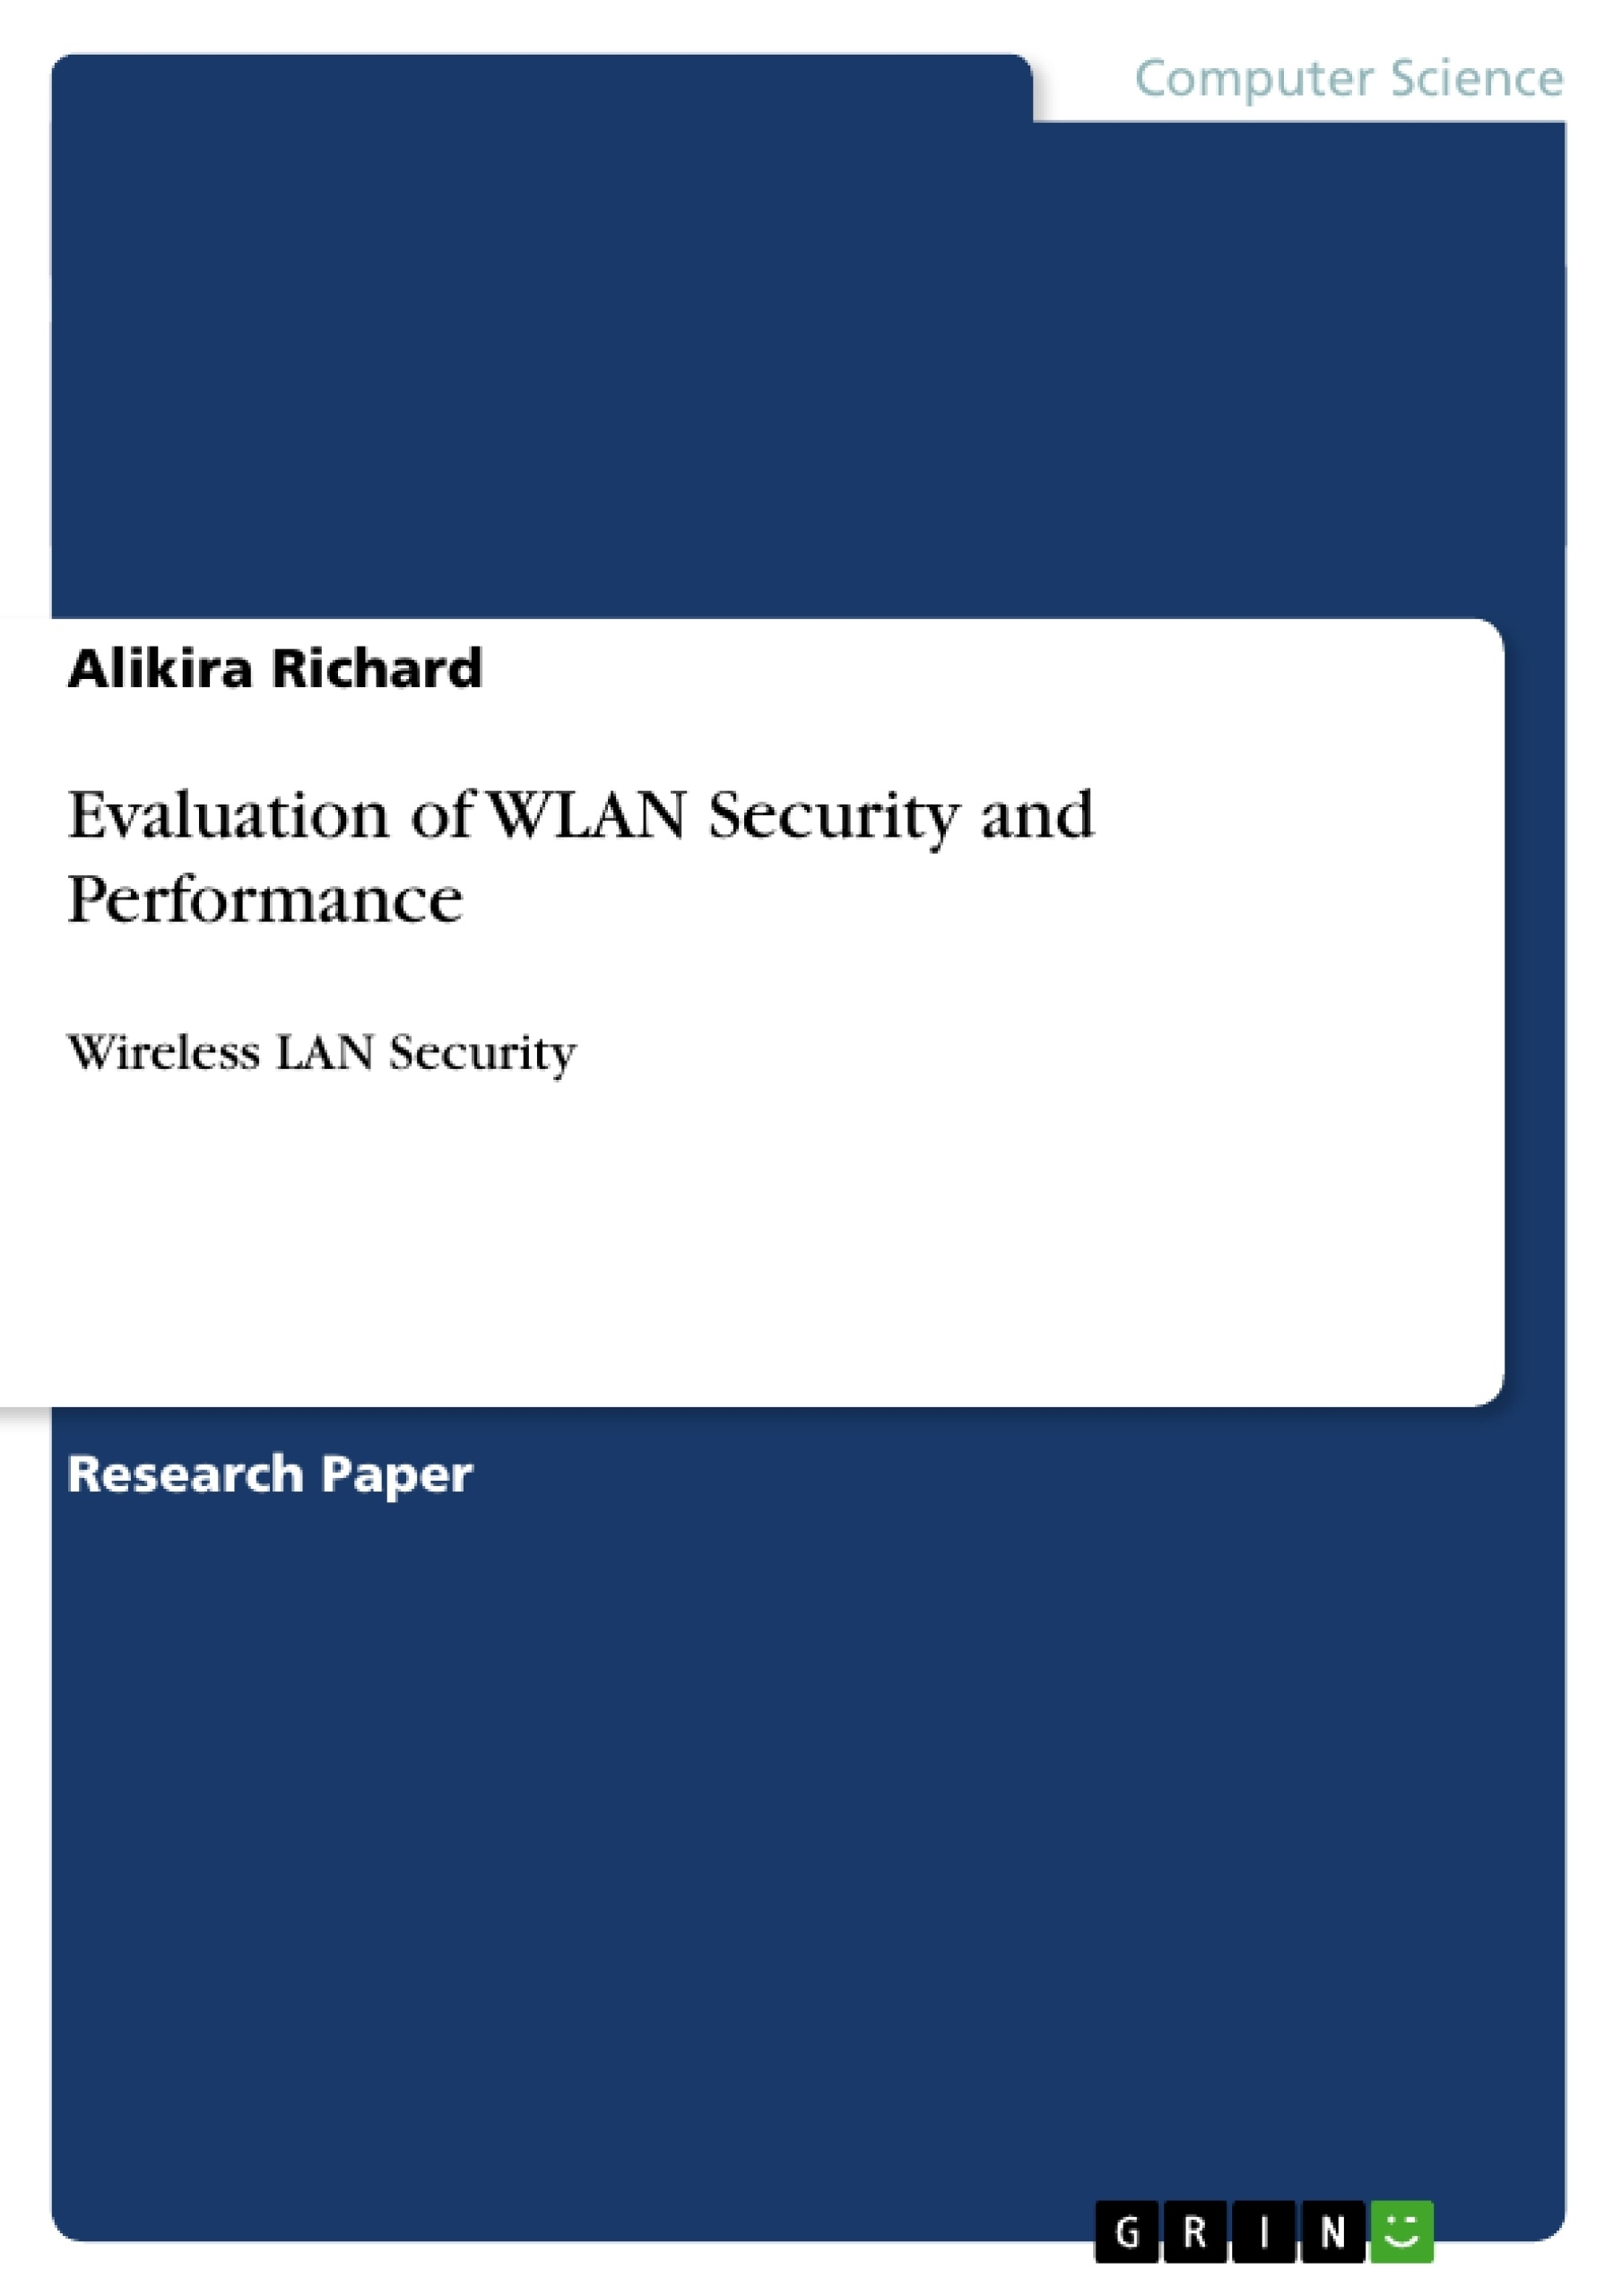 Title: Evaluation of WLAN Security and Performance